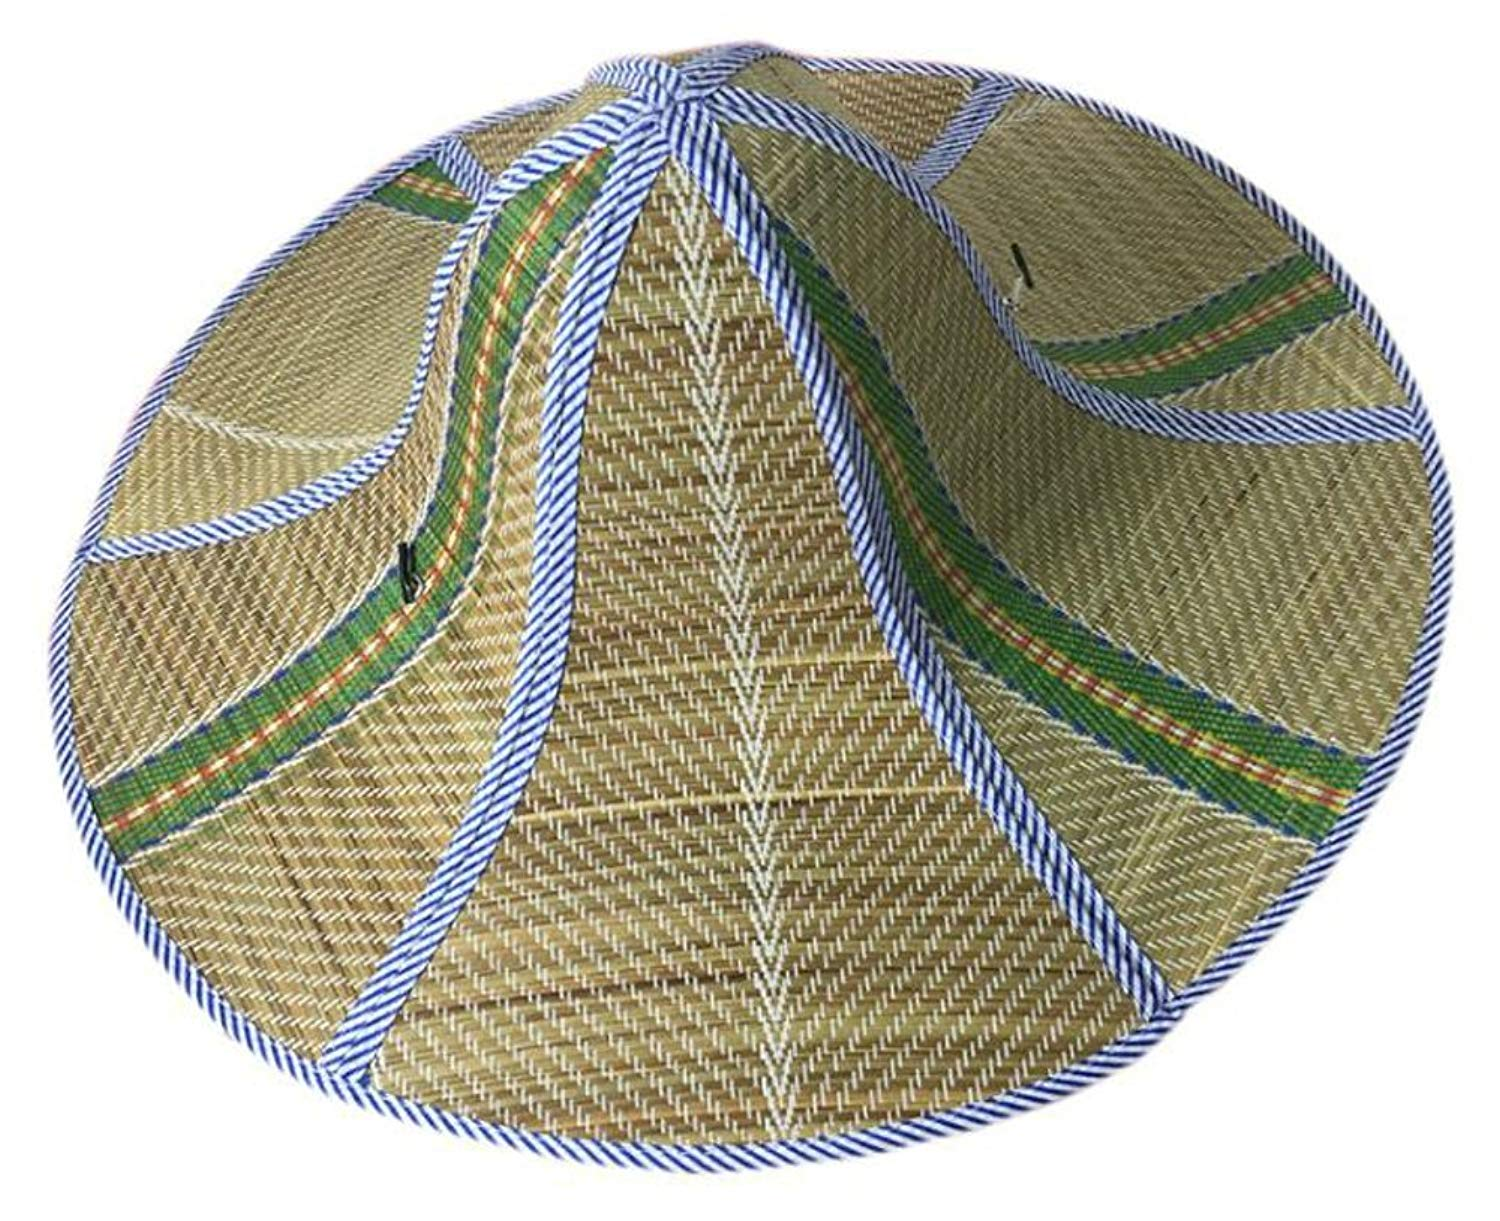 deb9bd7a Get Quotations · ilishop Women's Men's Straw Hat Fishing and Gardening Sun  Hat